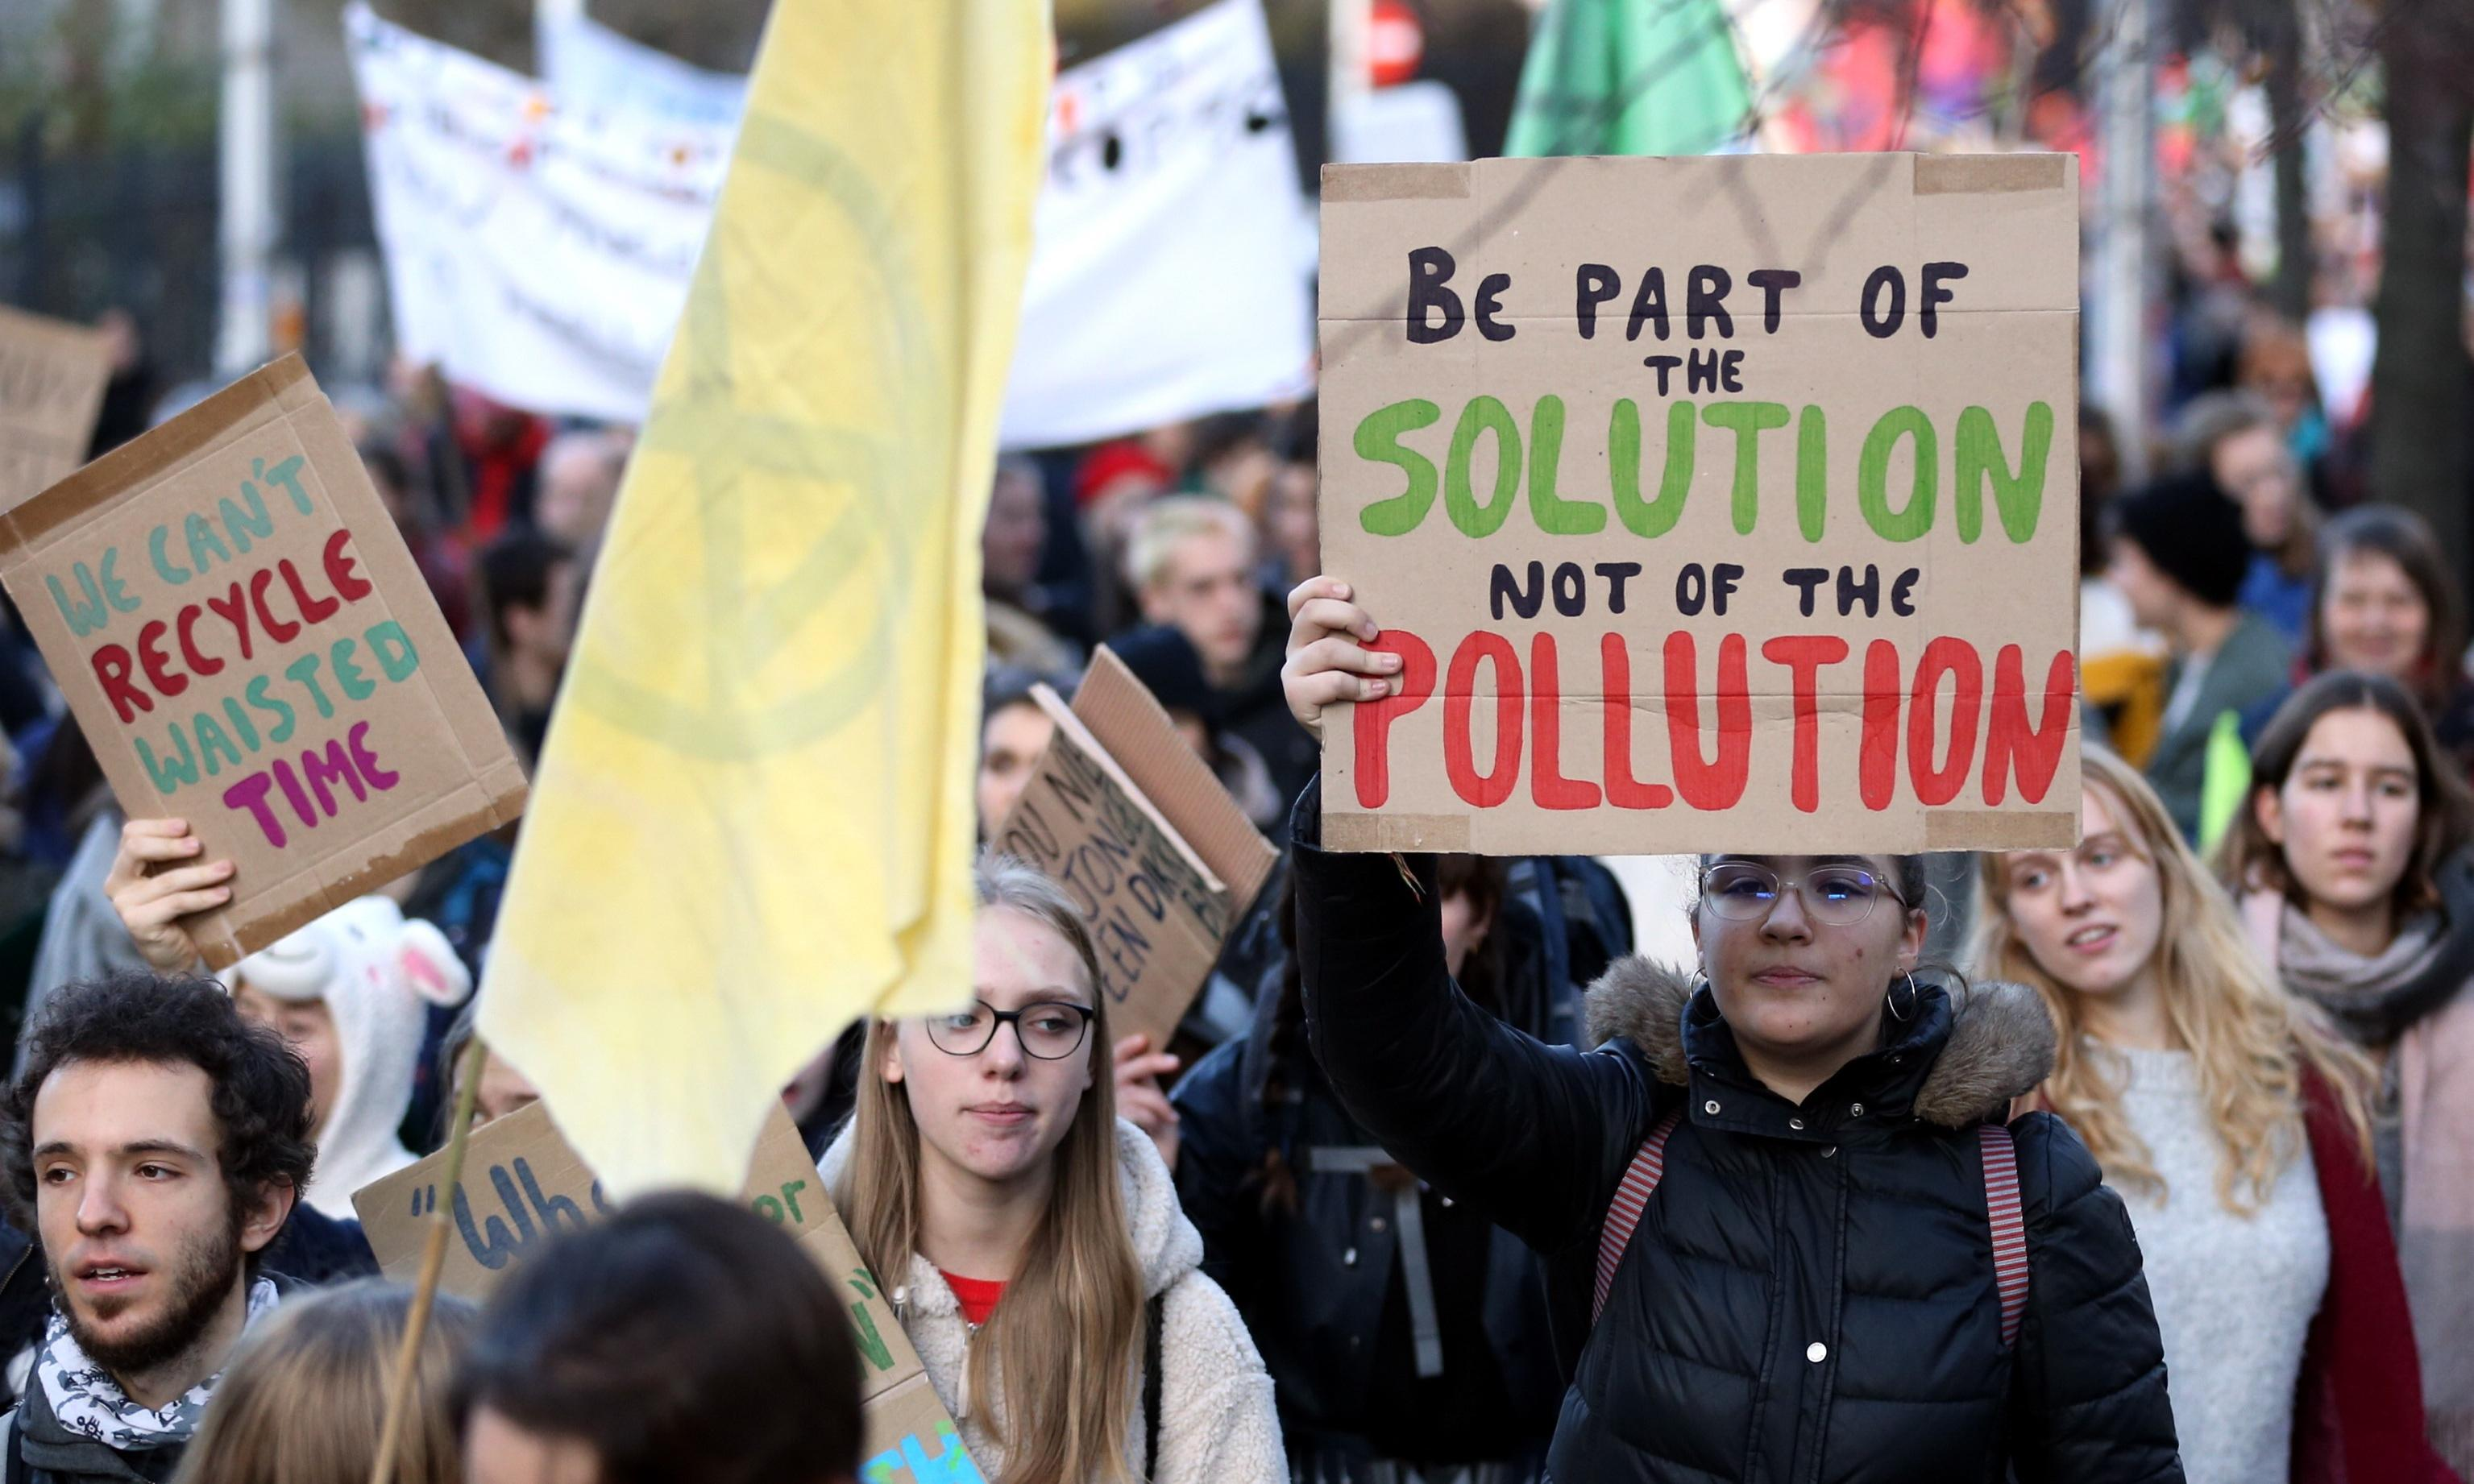 Europe must lead on the climate crisis. The European Green Deal shows how